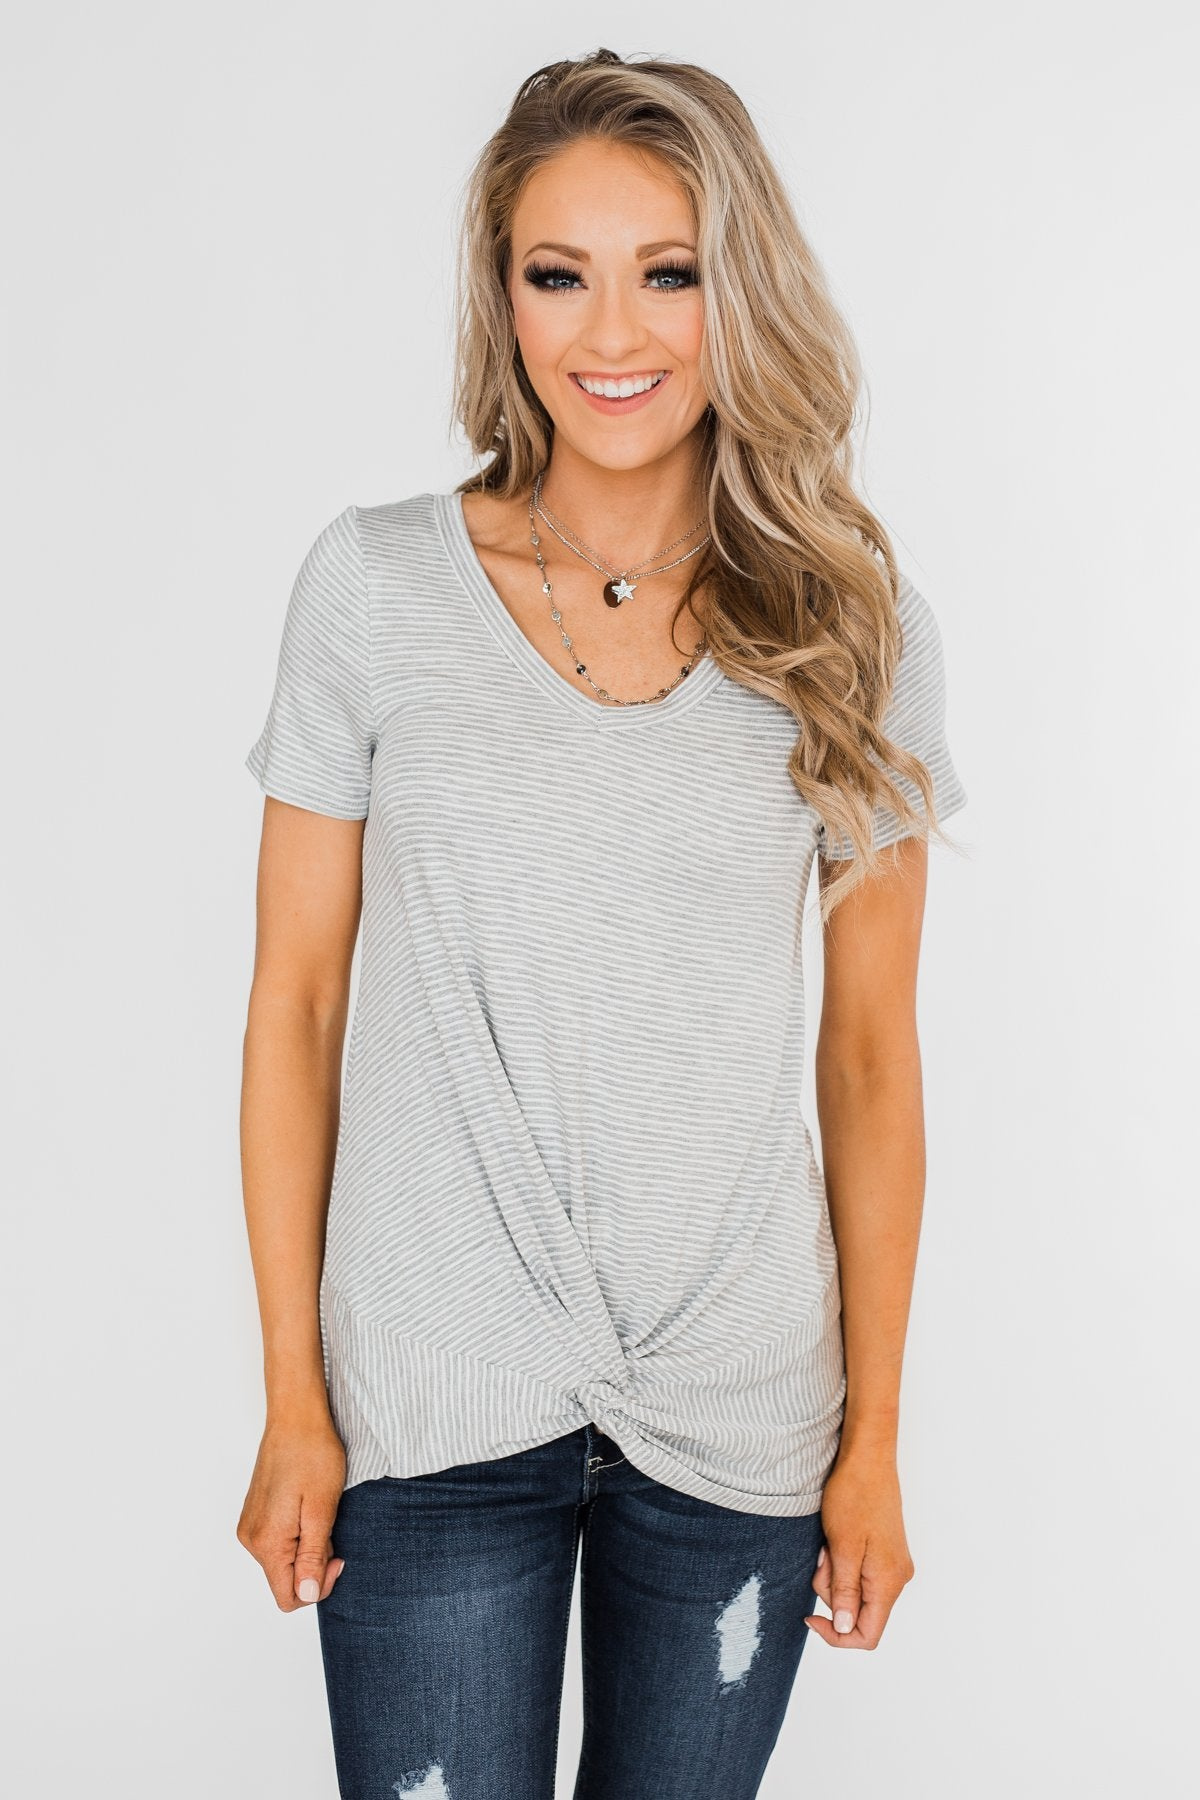 Knot This Time Striped Top- Heather Grey